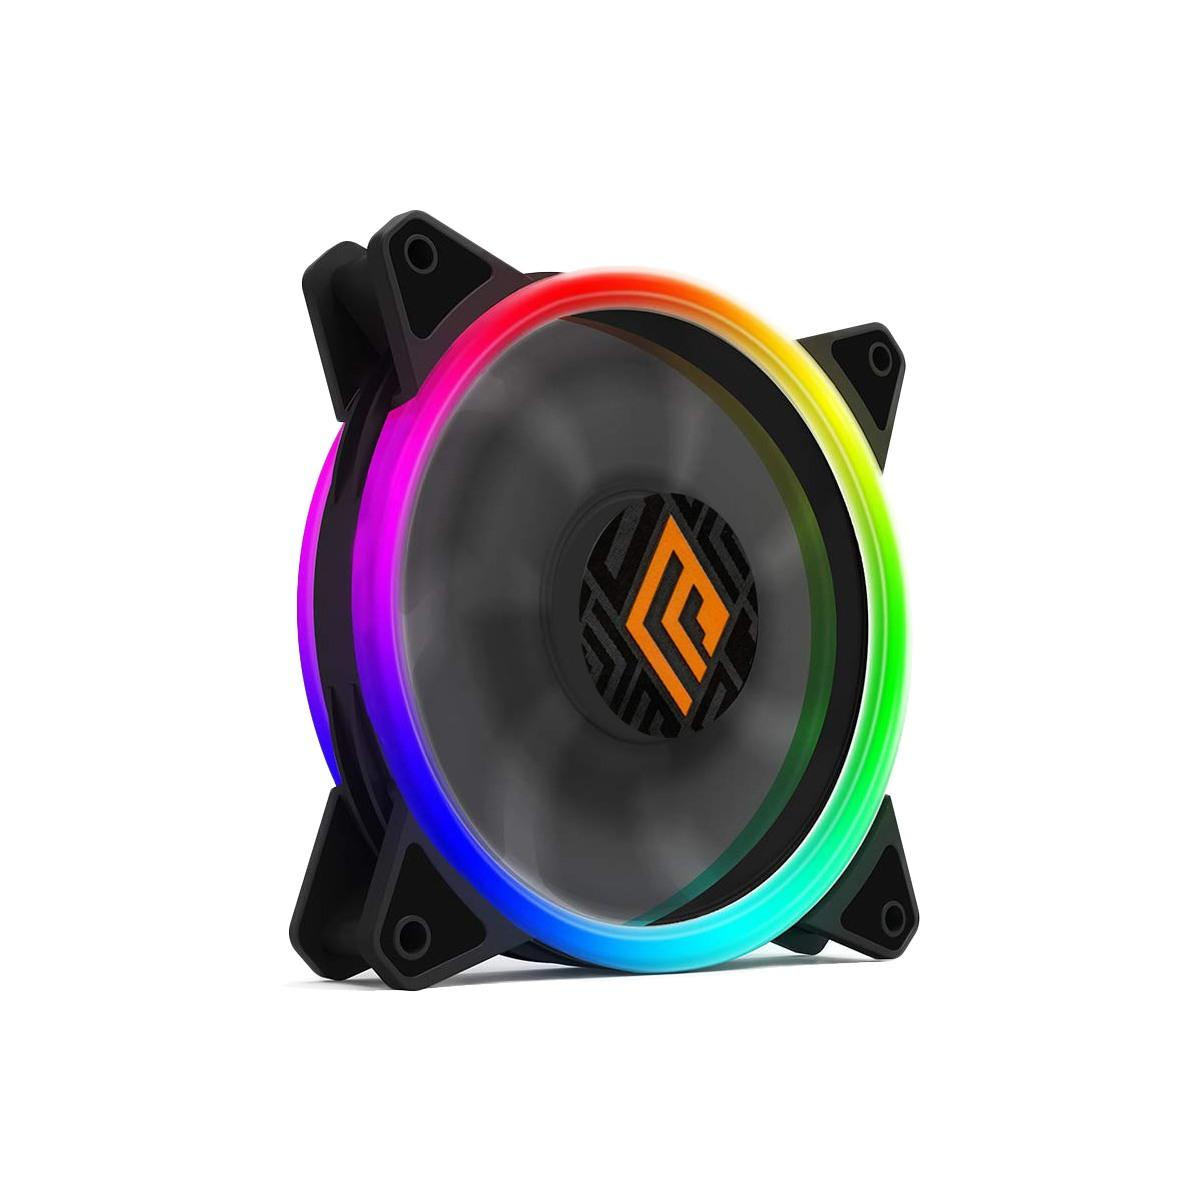 Ventola Noua Lips 1 Black 1200Rpm PWM 16 Led Dual Halo RGB Rainbow Addressable 120x120x25mm Antivibration